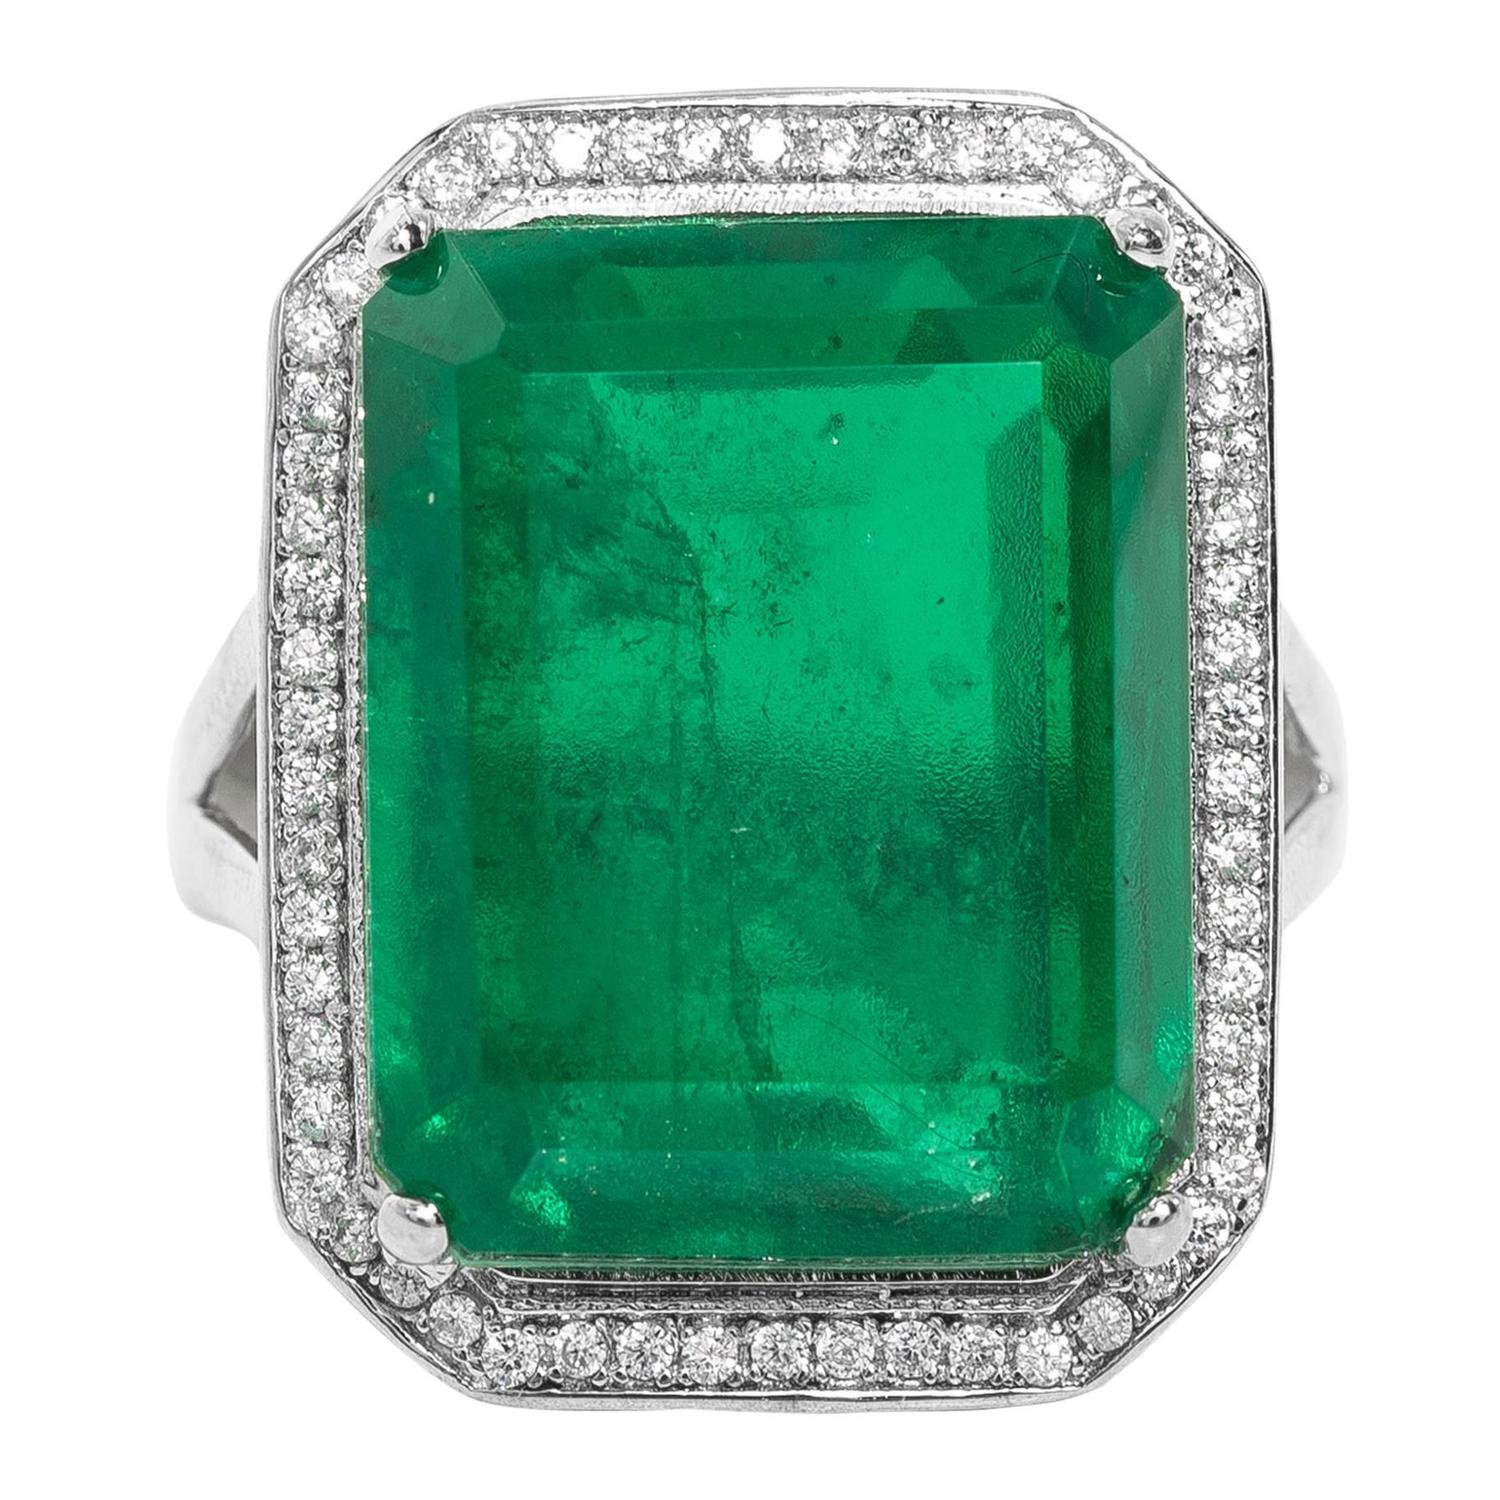 faux emerald ring for sale at